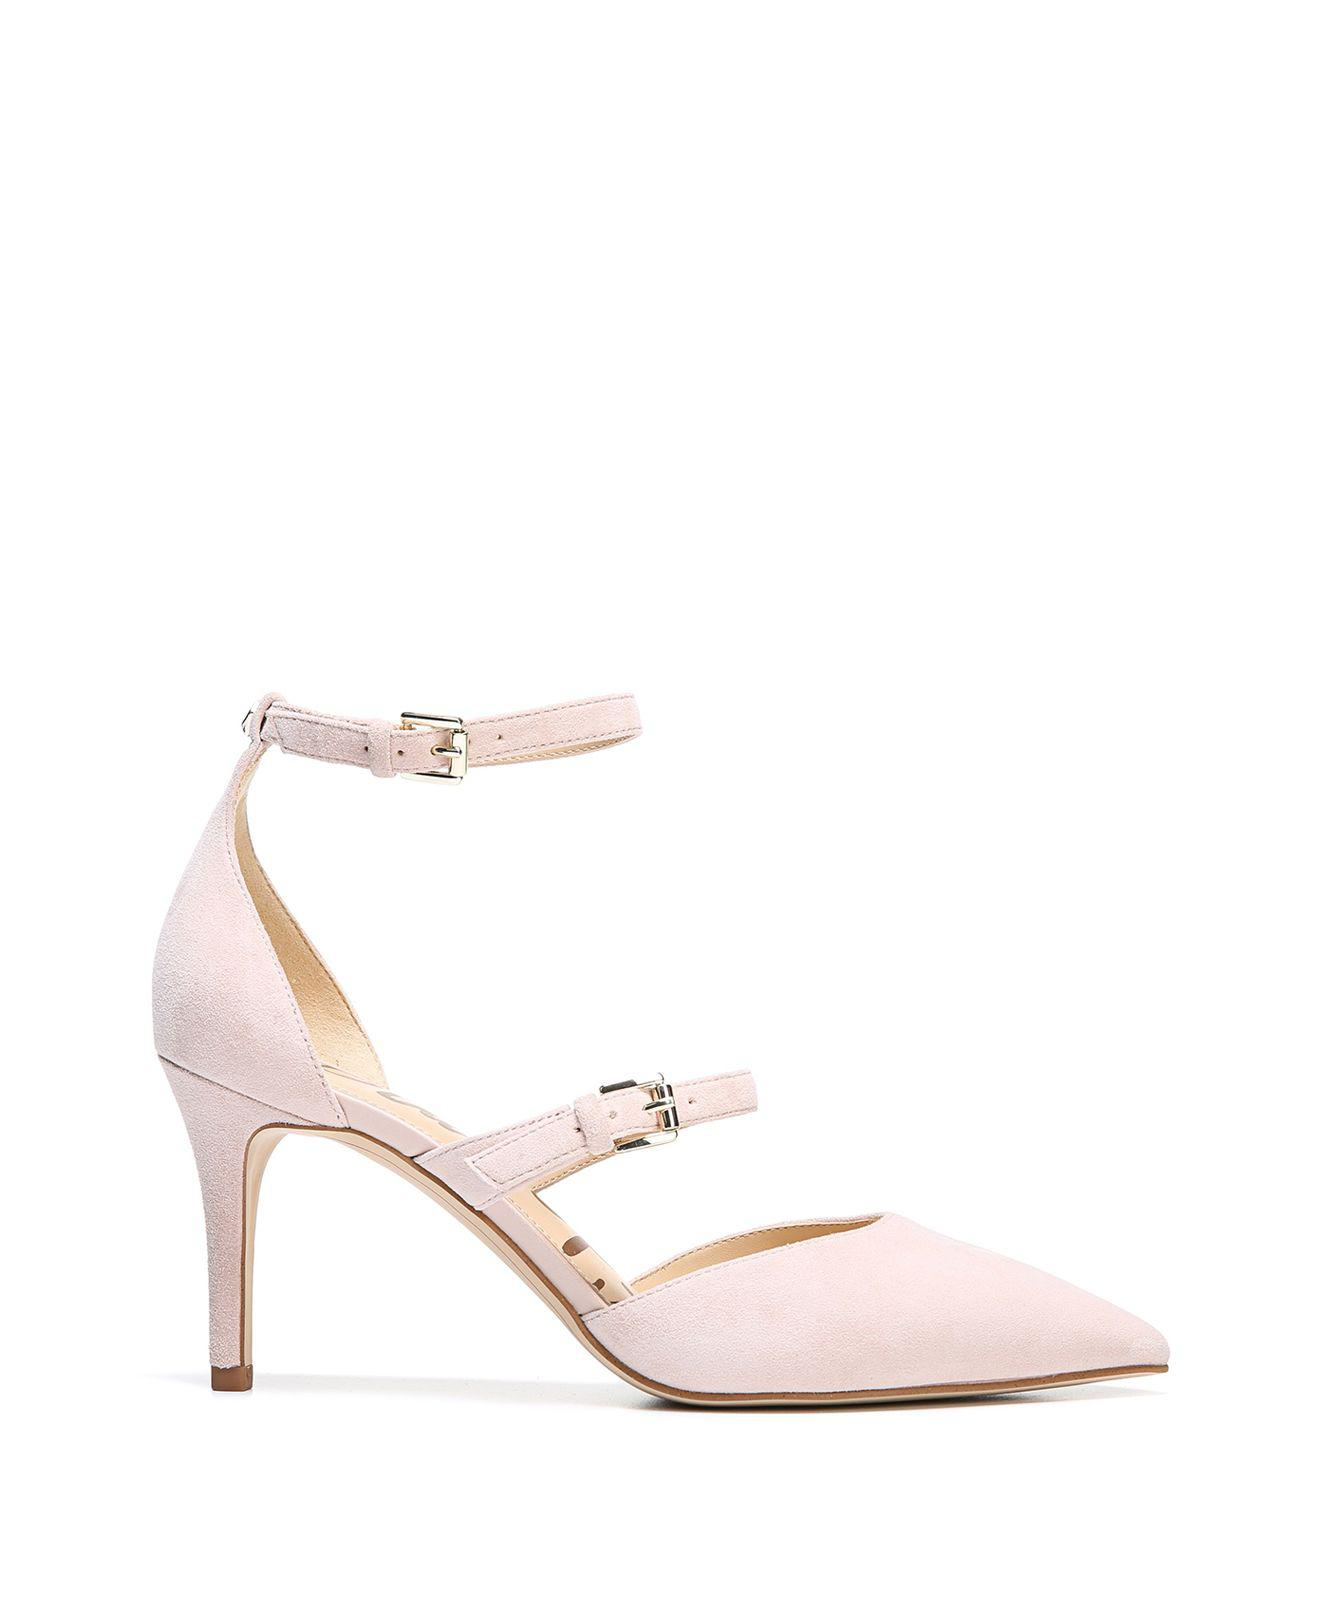 ef2a8e46b9ba Lyst - Sam Edelman Thea Pointed Toe D orsay Ankle Strap Pumps